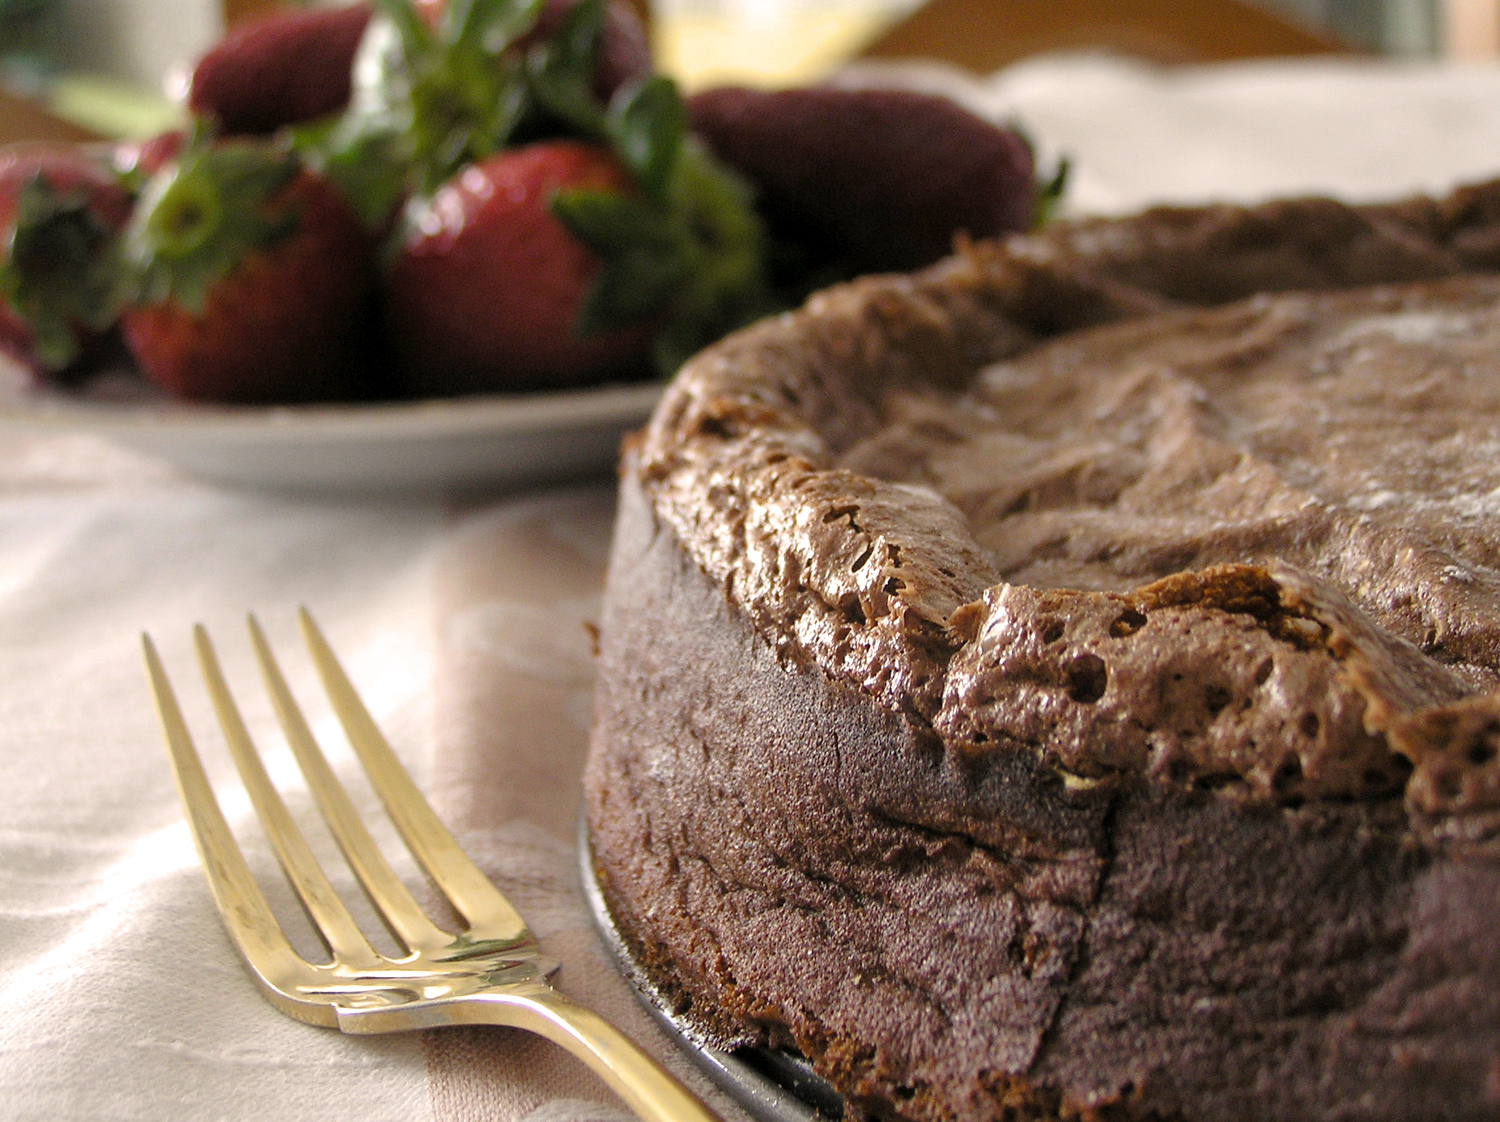 Elizabeth David's Chocolate Mousse and Why I Write about Food